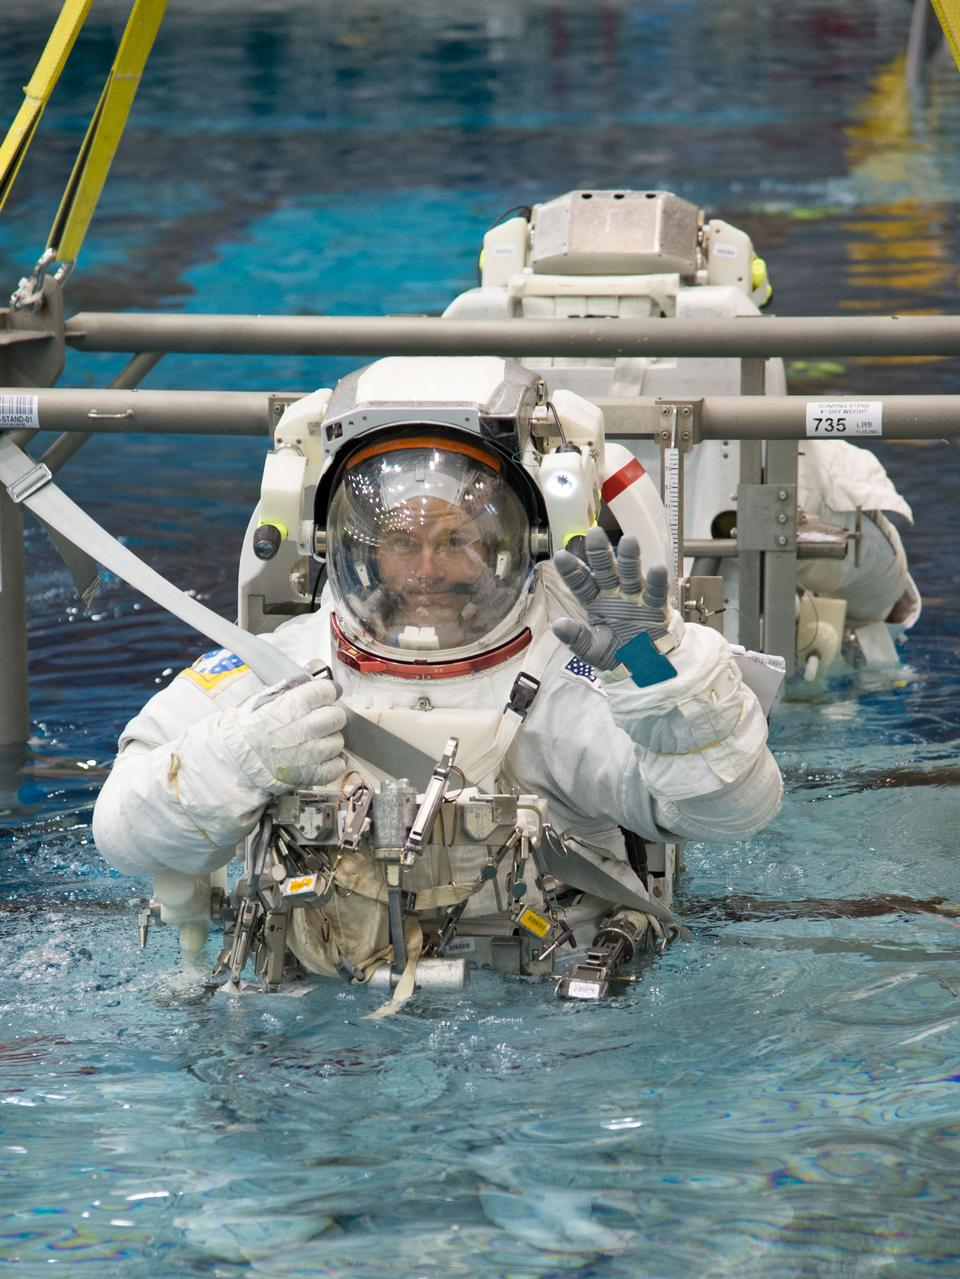 Free download high resolution image - free image free photo free stock image public domain picture  Spacewalk Training at the Neutral Buoyancy Laboratory